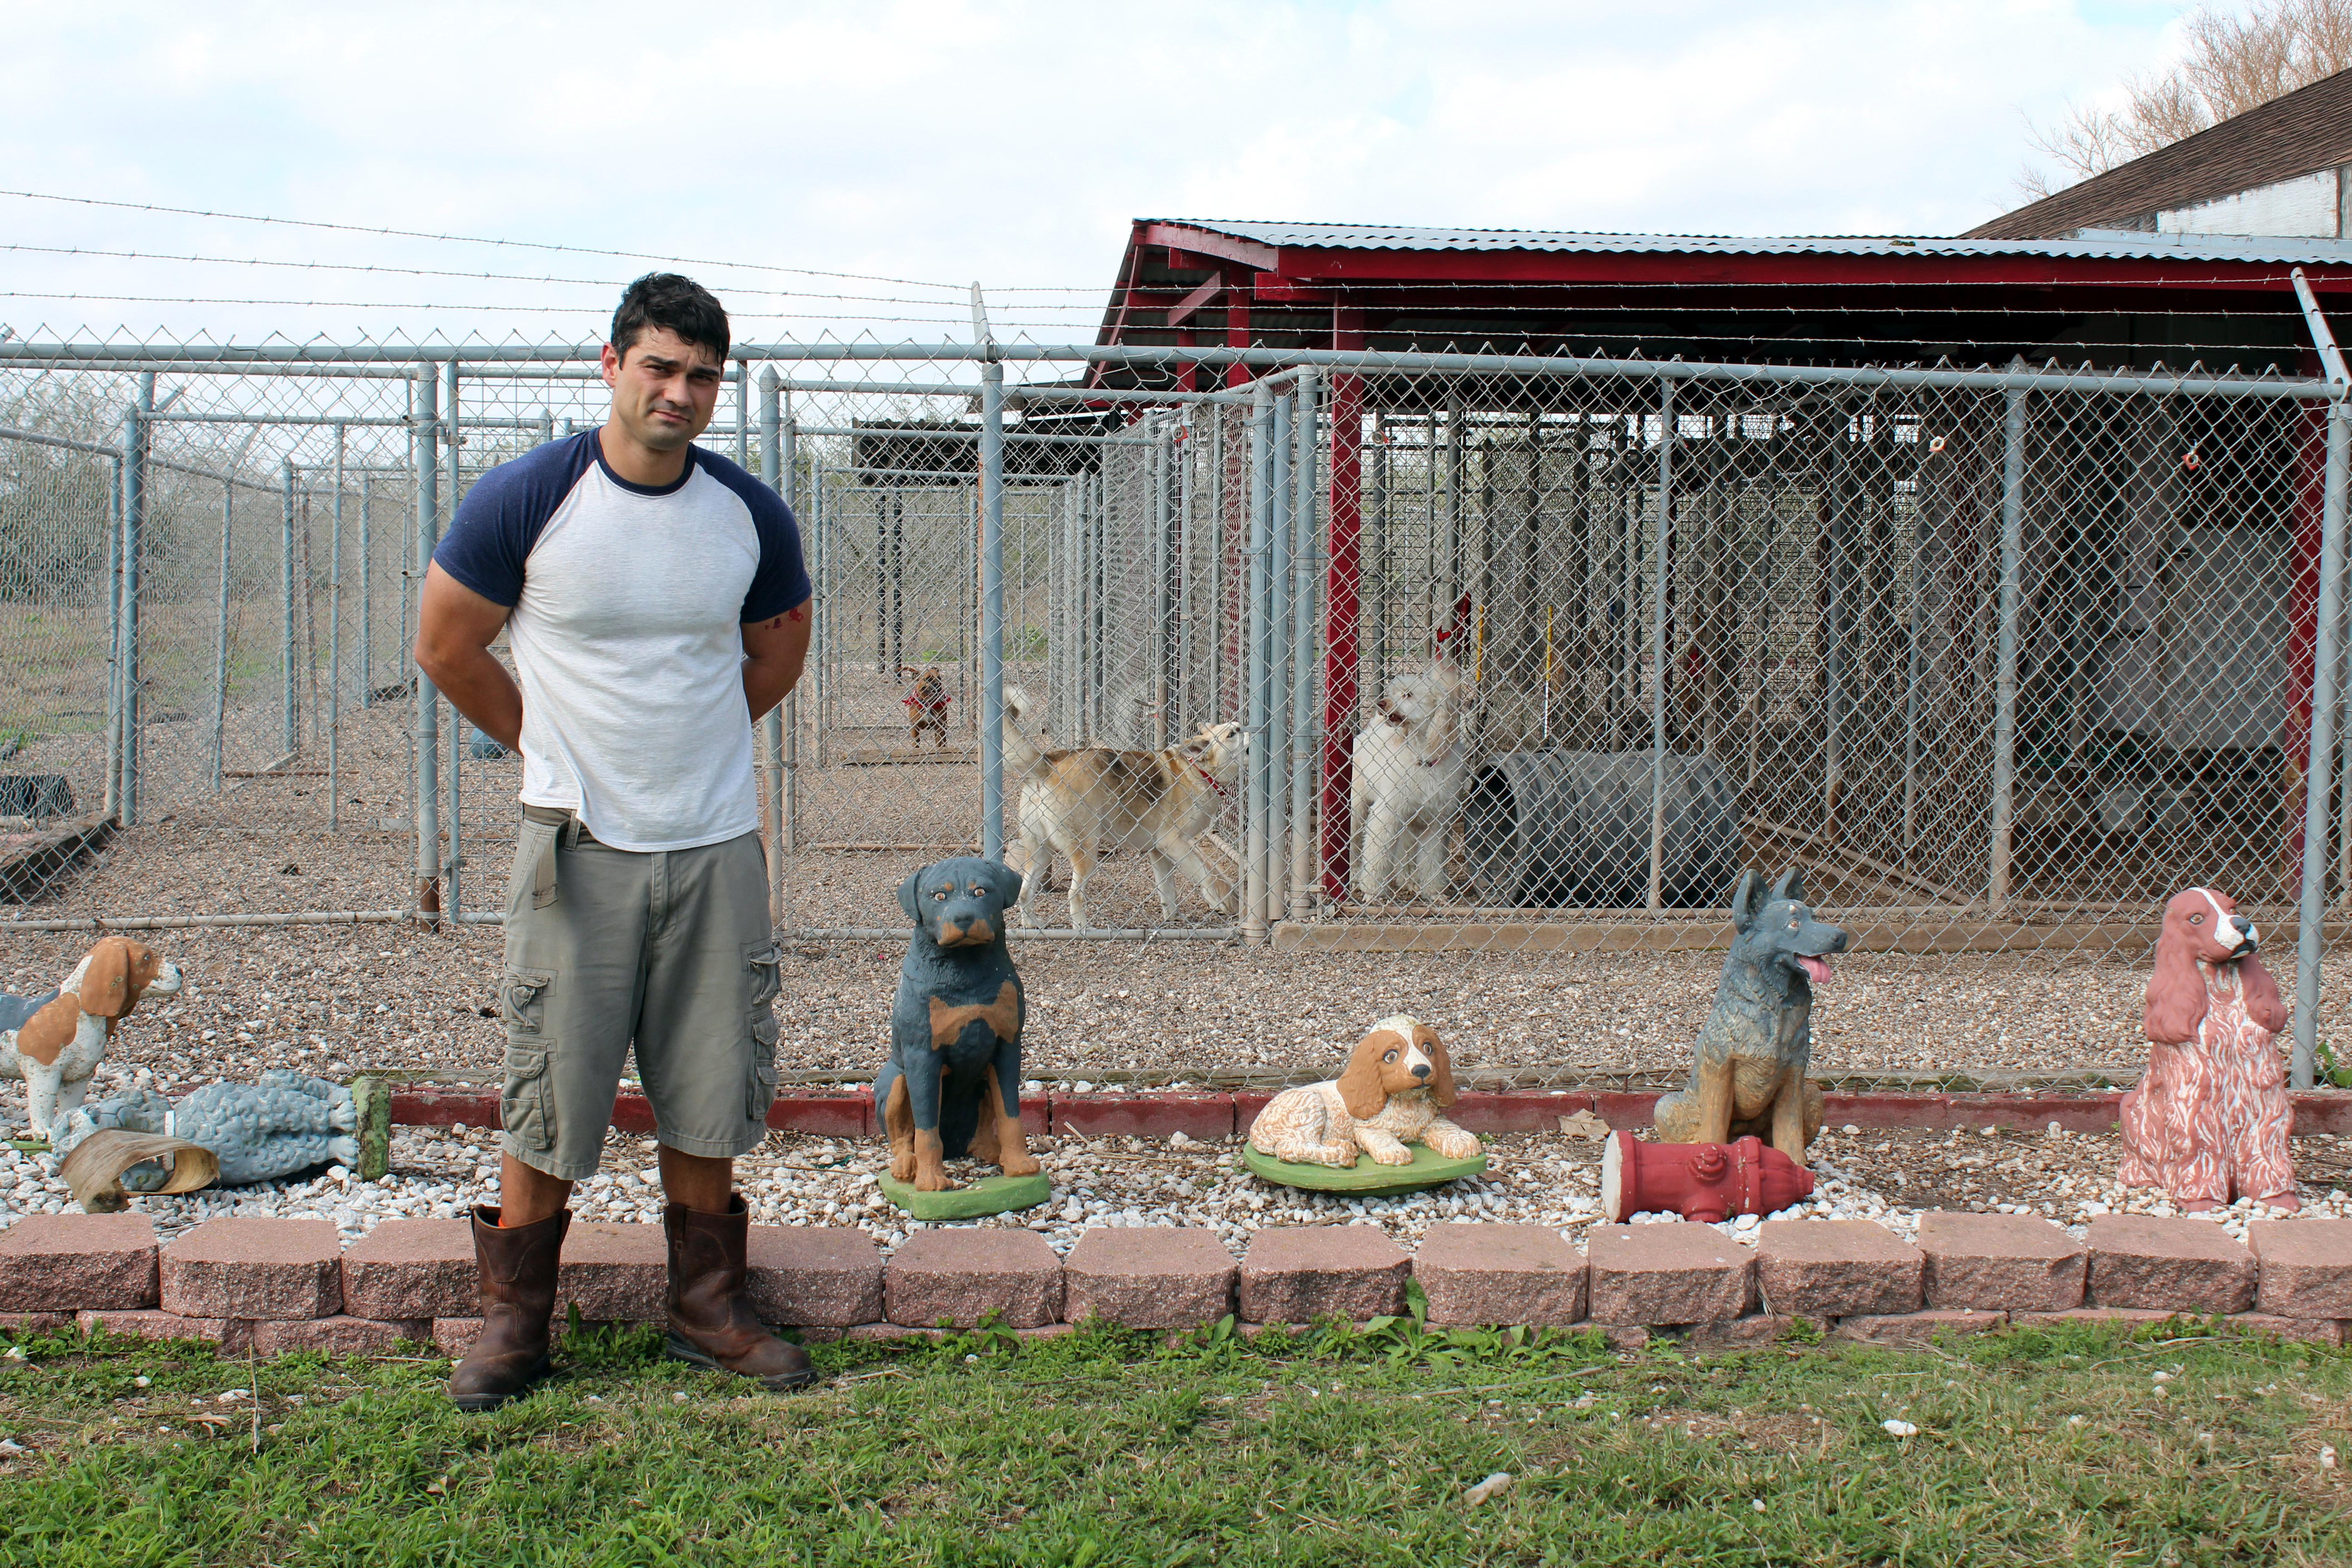 Demand Grows For Dog Day Care Valley Business Report